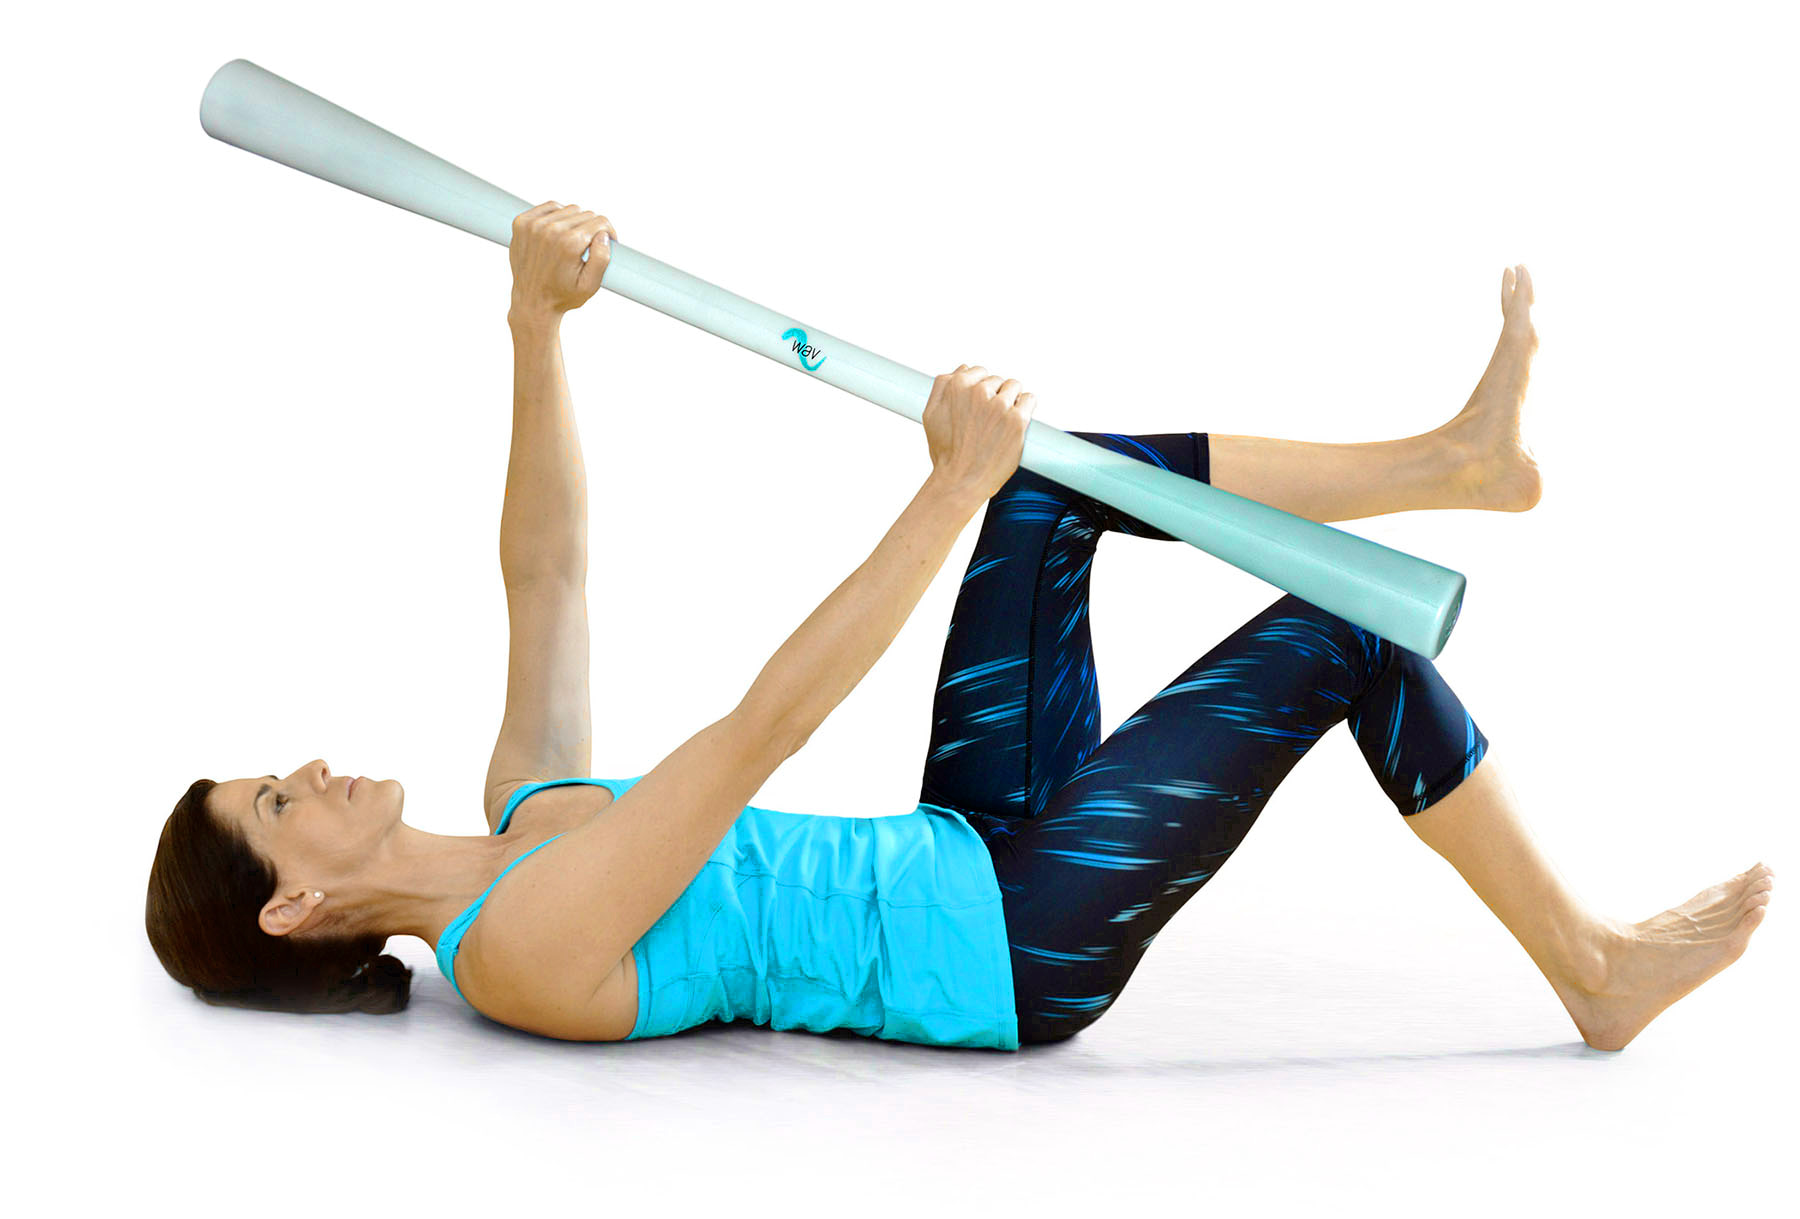 Proprioception exercises for better performance